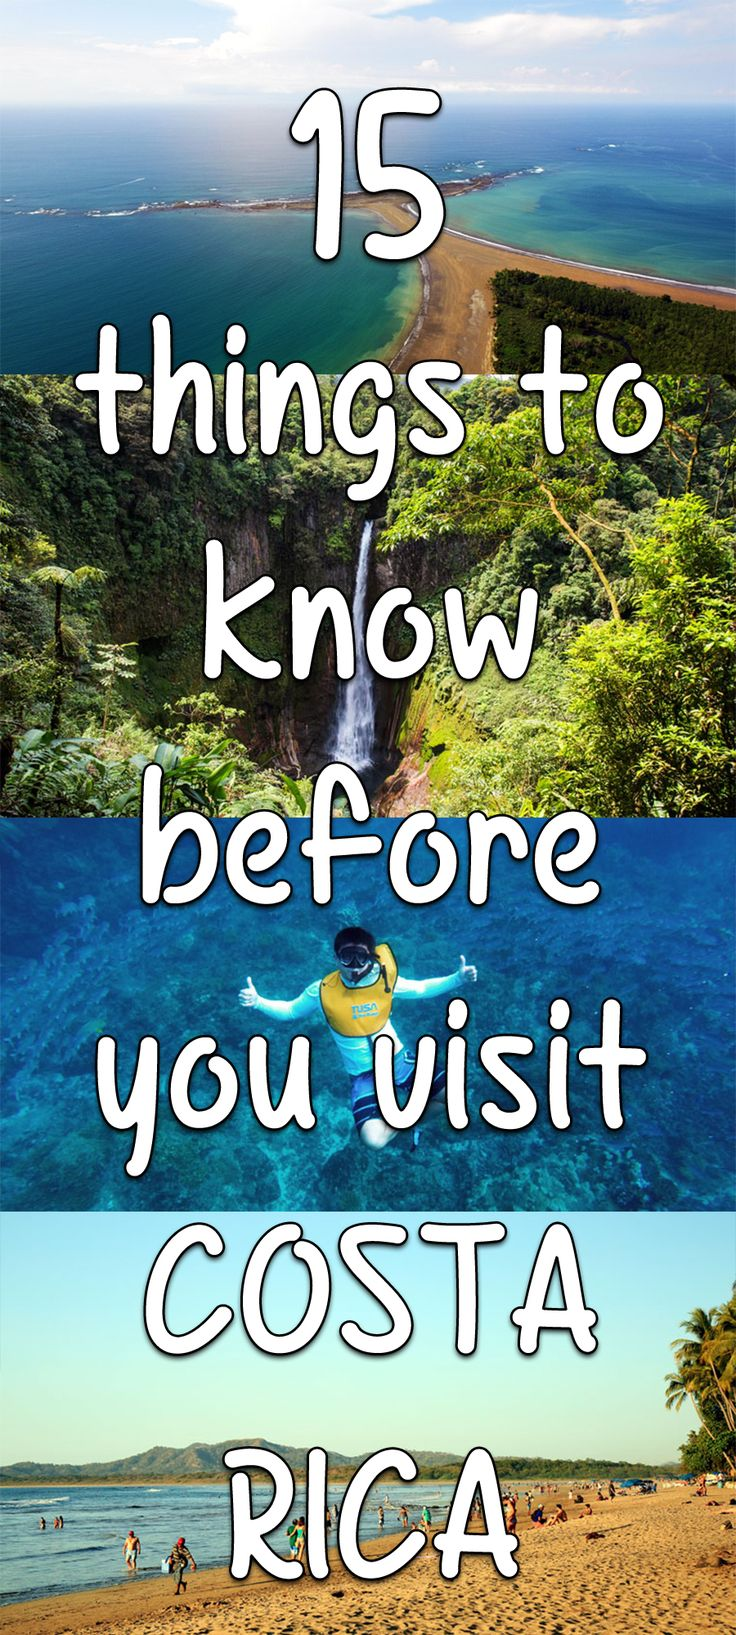 Visiting Costa Rica? Here are 15 things to know before you visit to help plan your trip: http://mytanfeet.com/costa-rica-travel-tips/15-things-to-know-about-costa-rica/